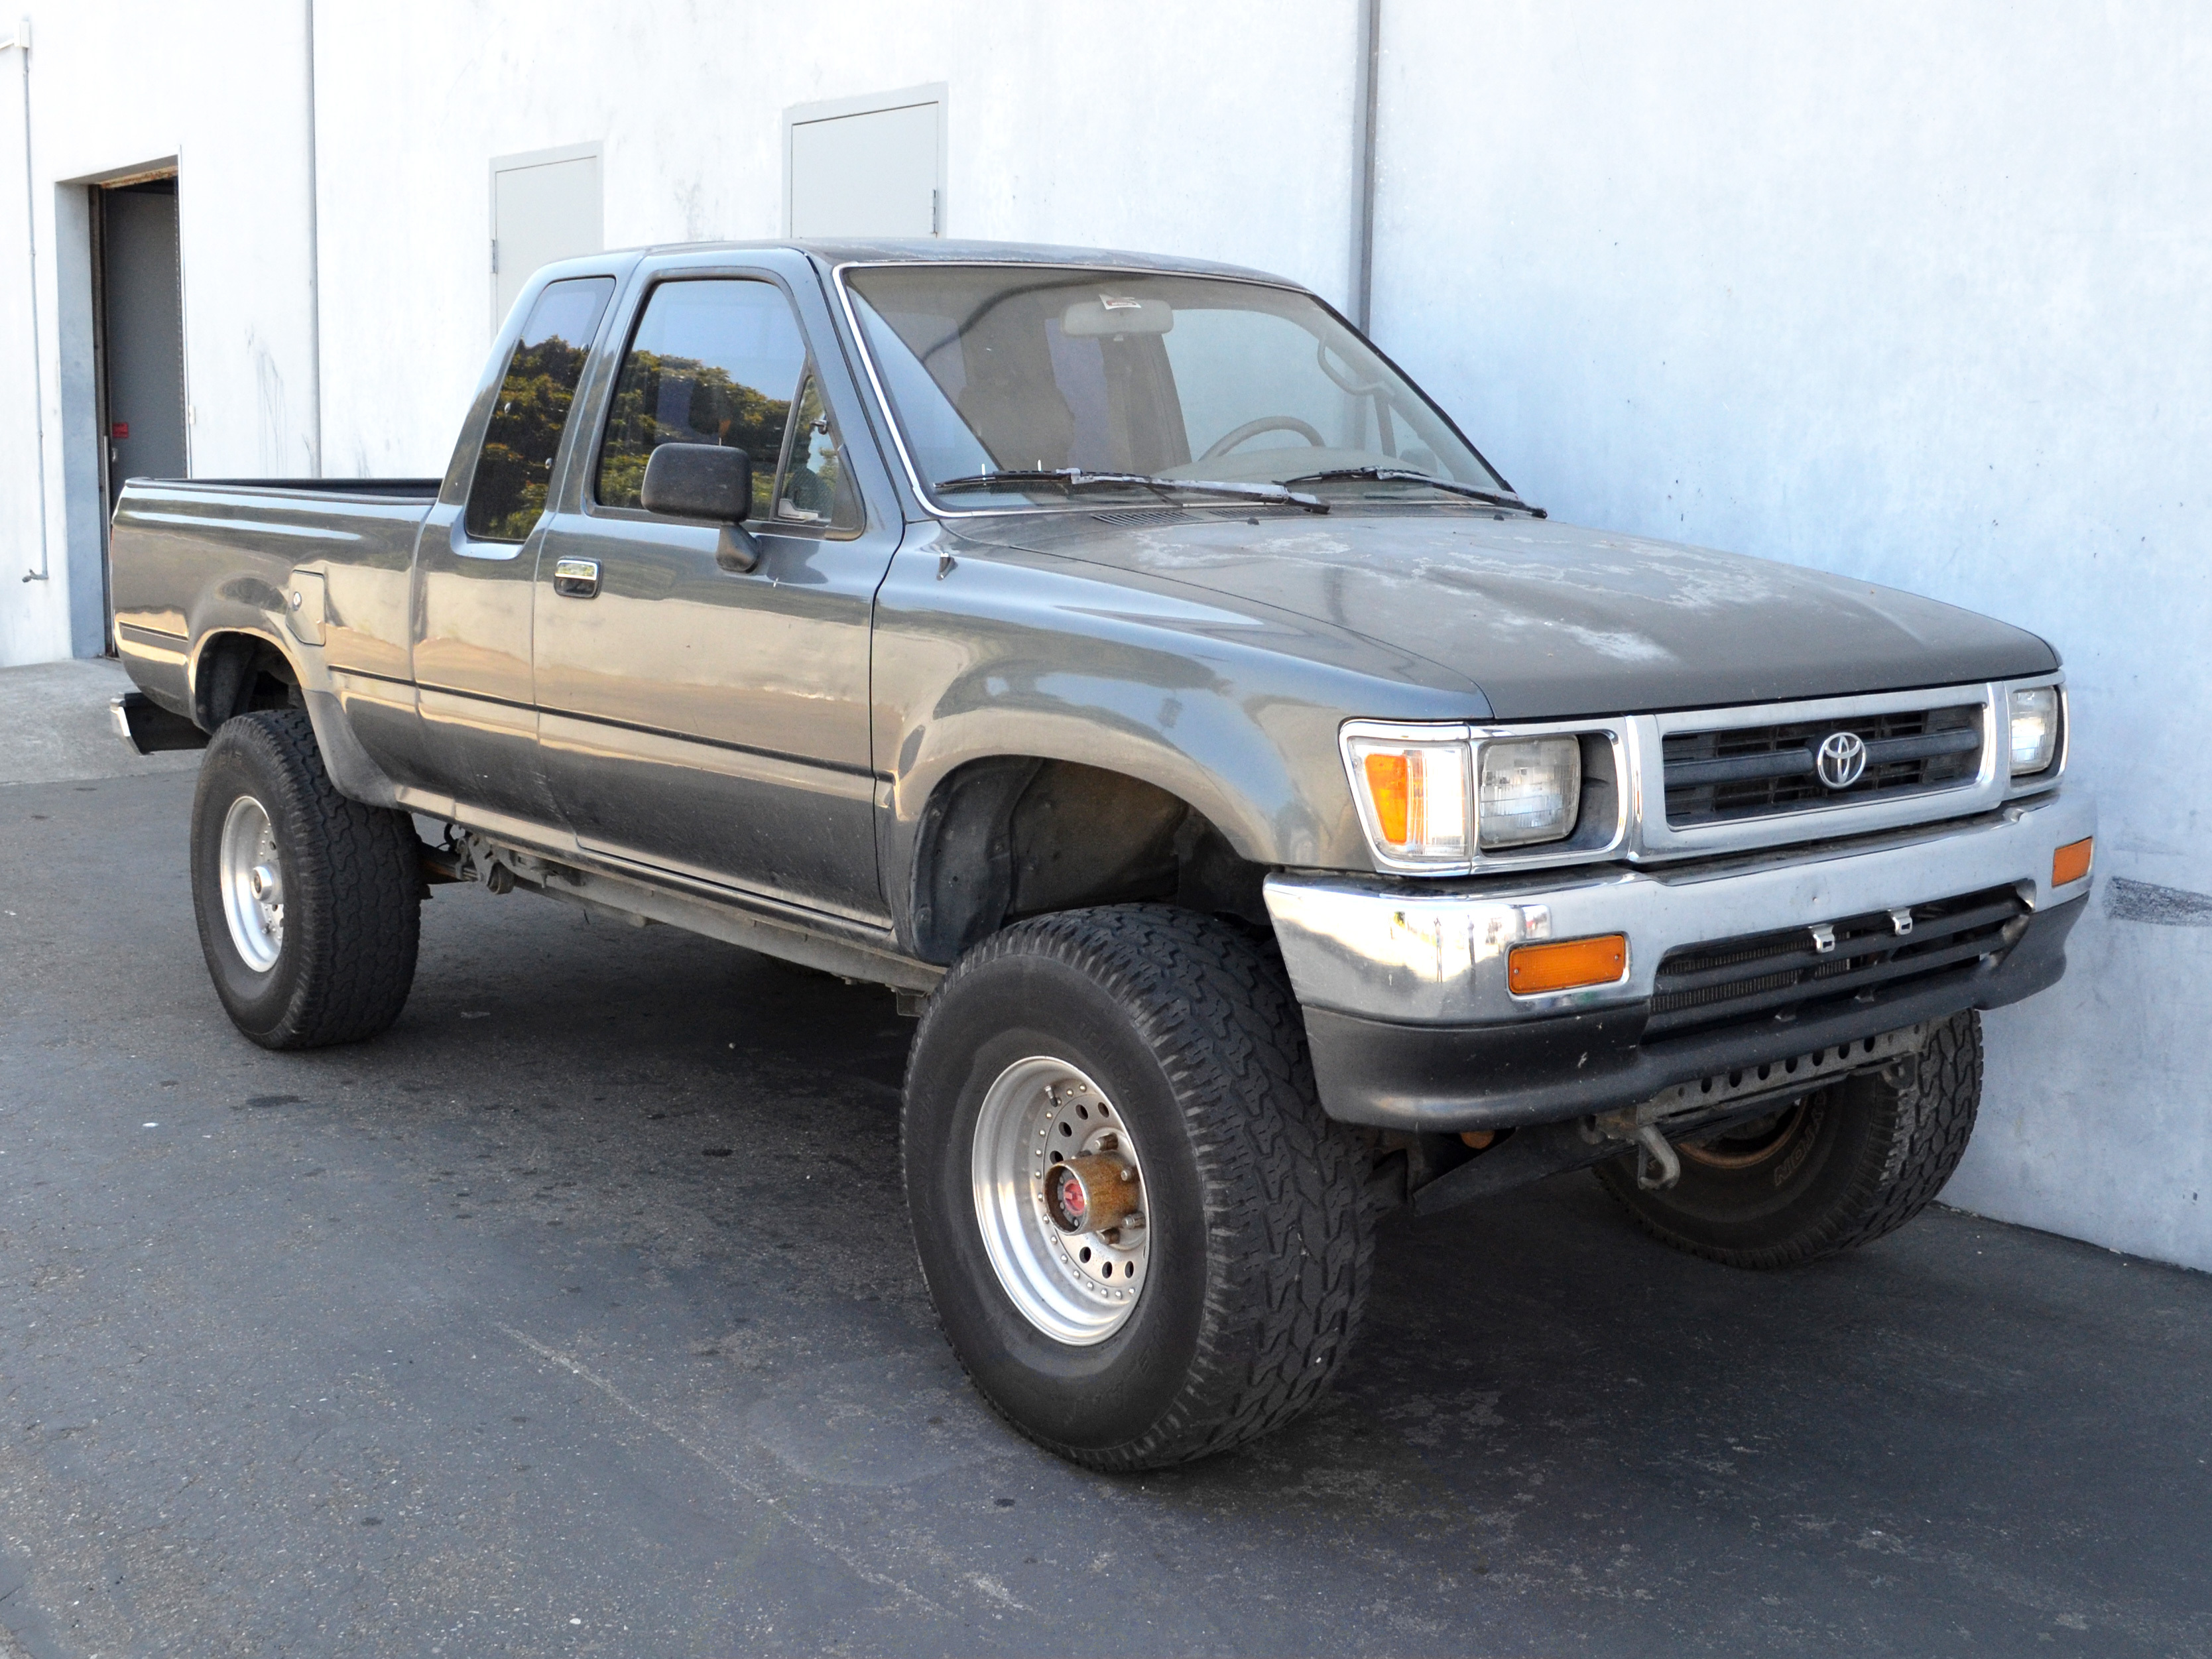 Toyota Pickup Photos, Informations, Articles - BestCarMag.com